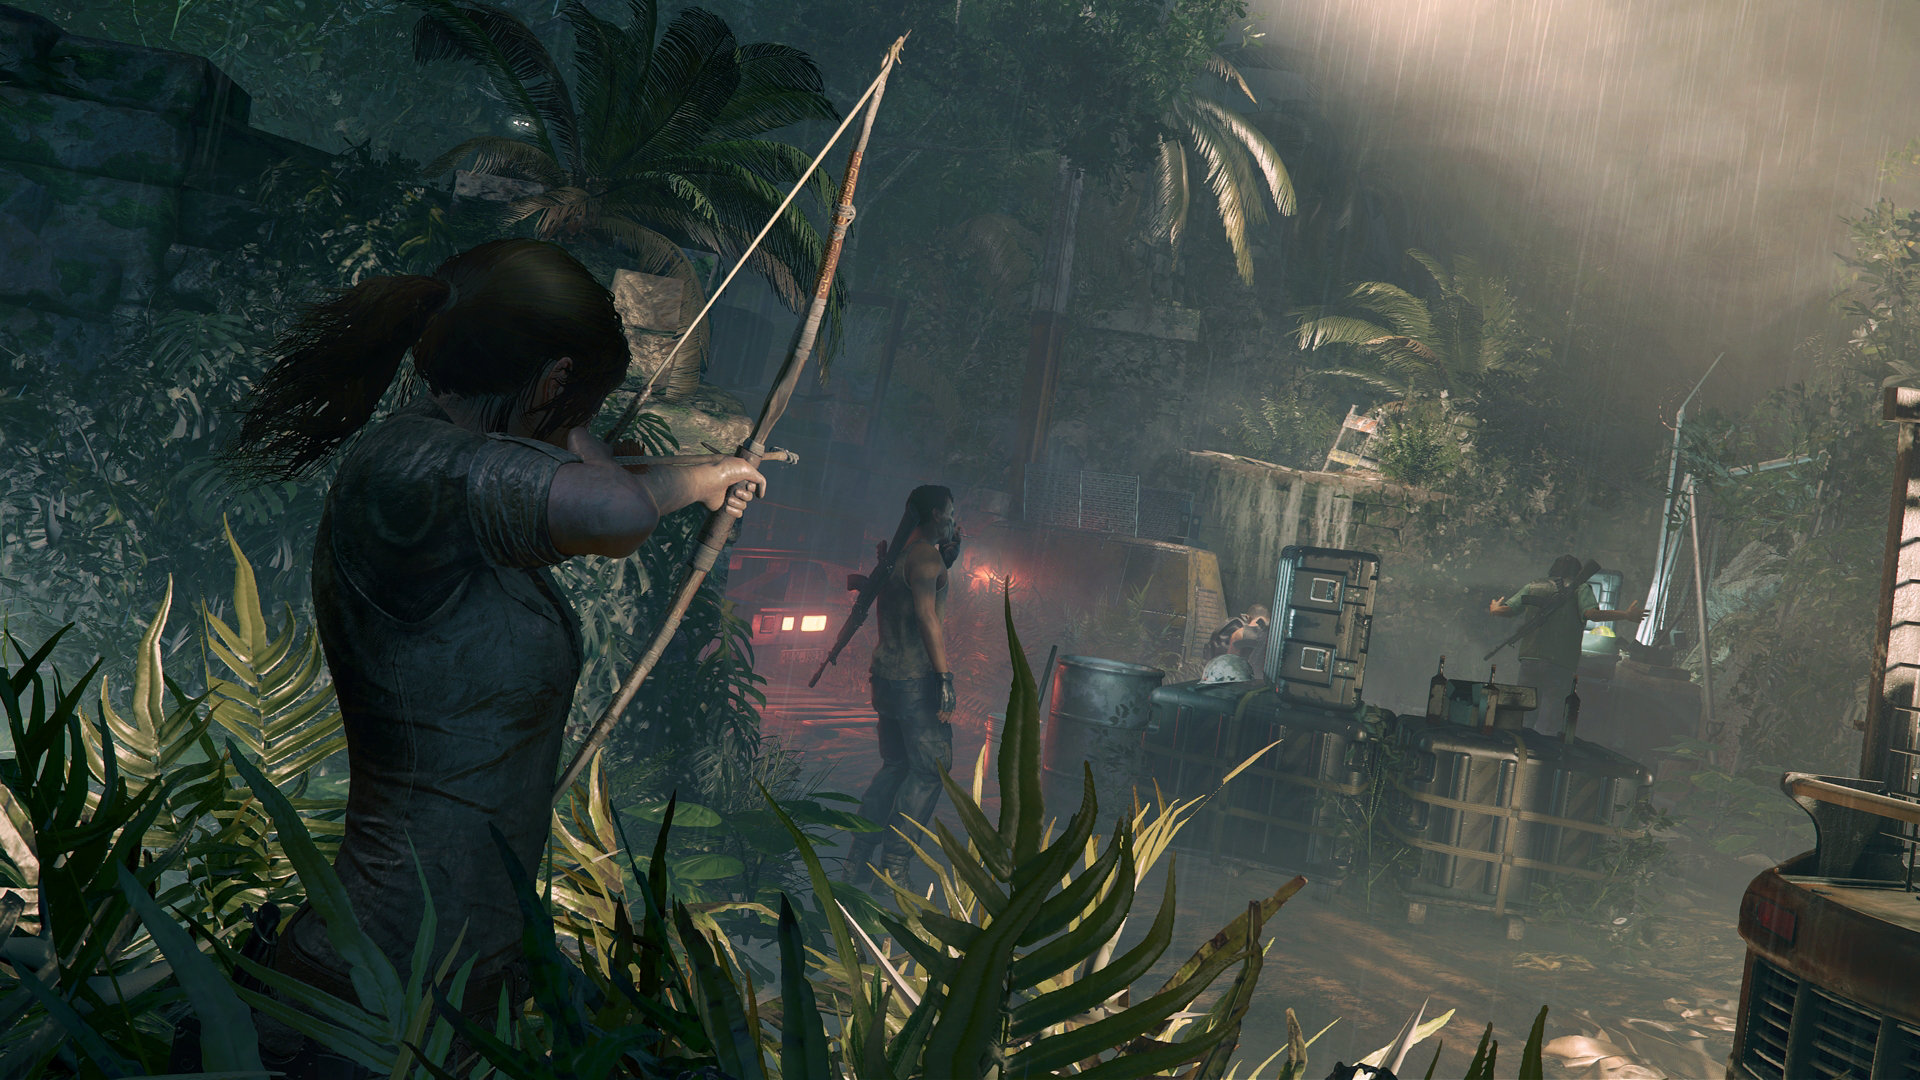 shadow-of-the-tomb-raider-screen-03-ps4-